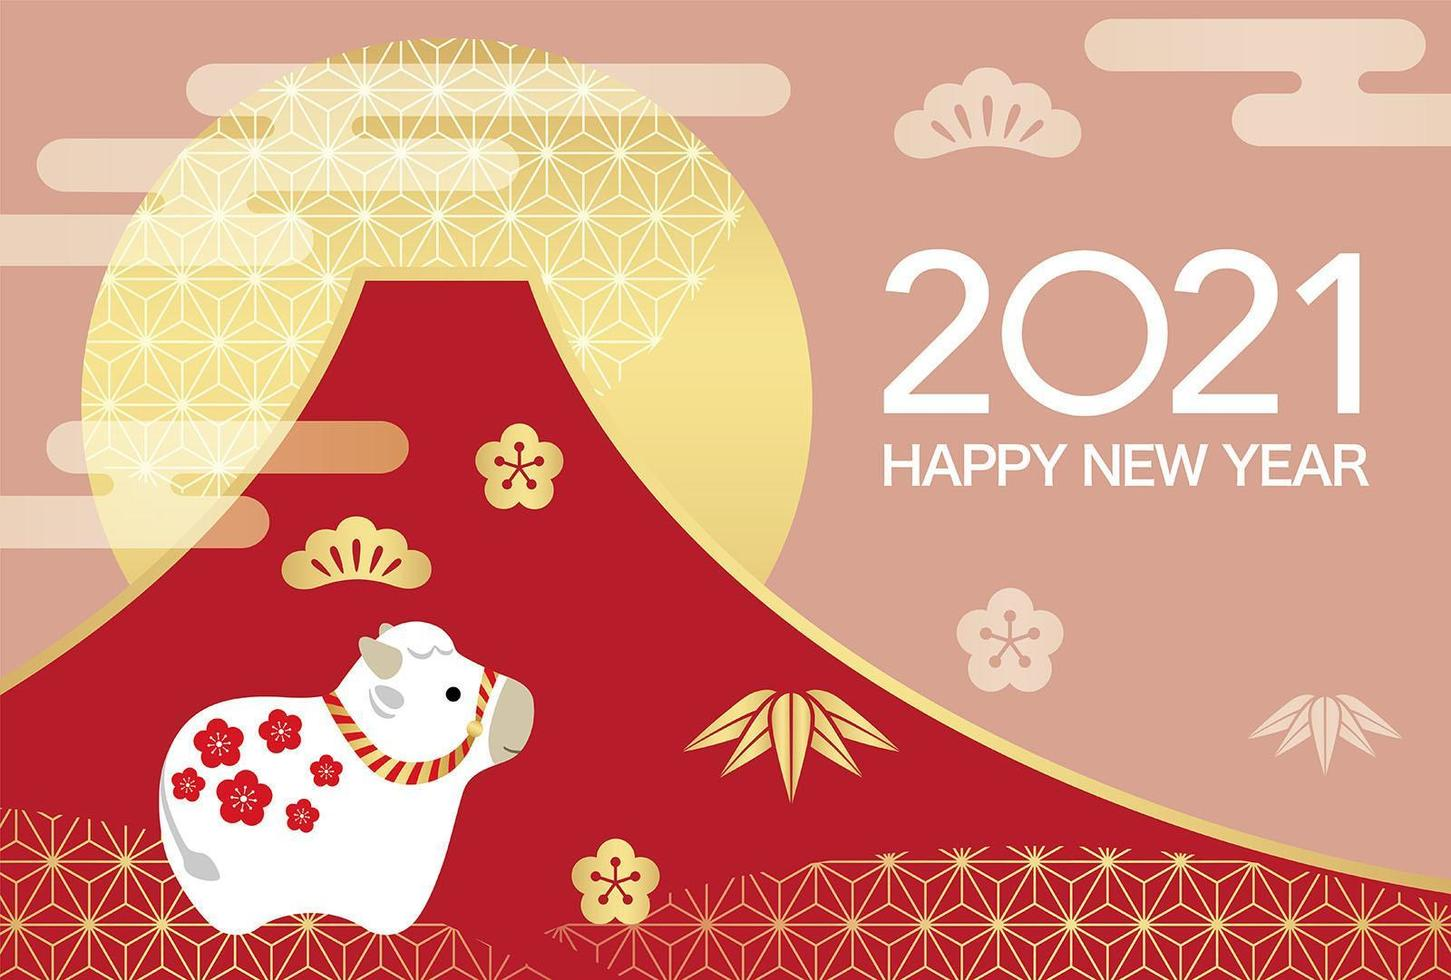 2021 Happy New Year Of The Ox Design Download Free Vectors Clipart Graphics Vector Art